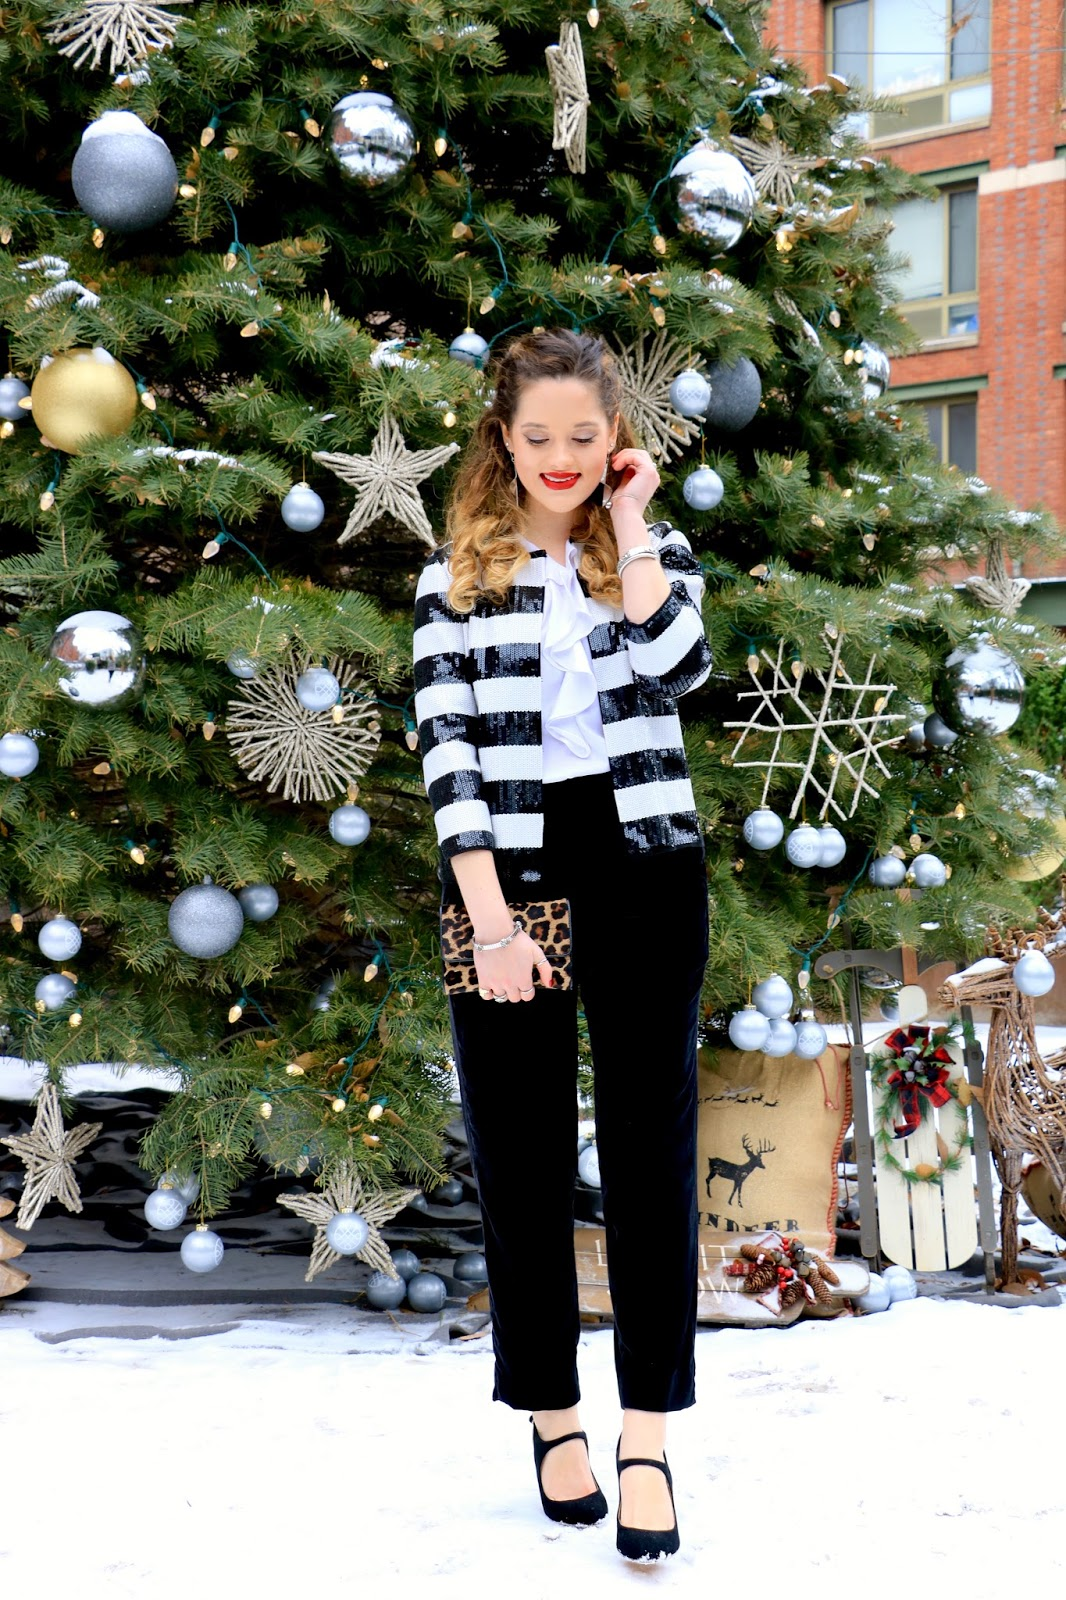 Nyc fashion blogger Kathleen Harper's holiday outfit